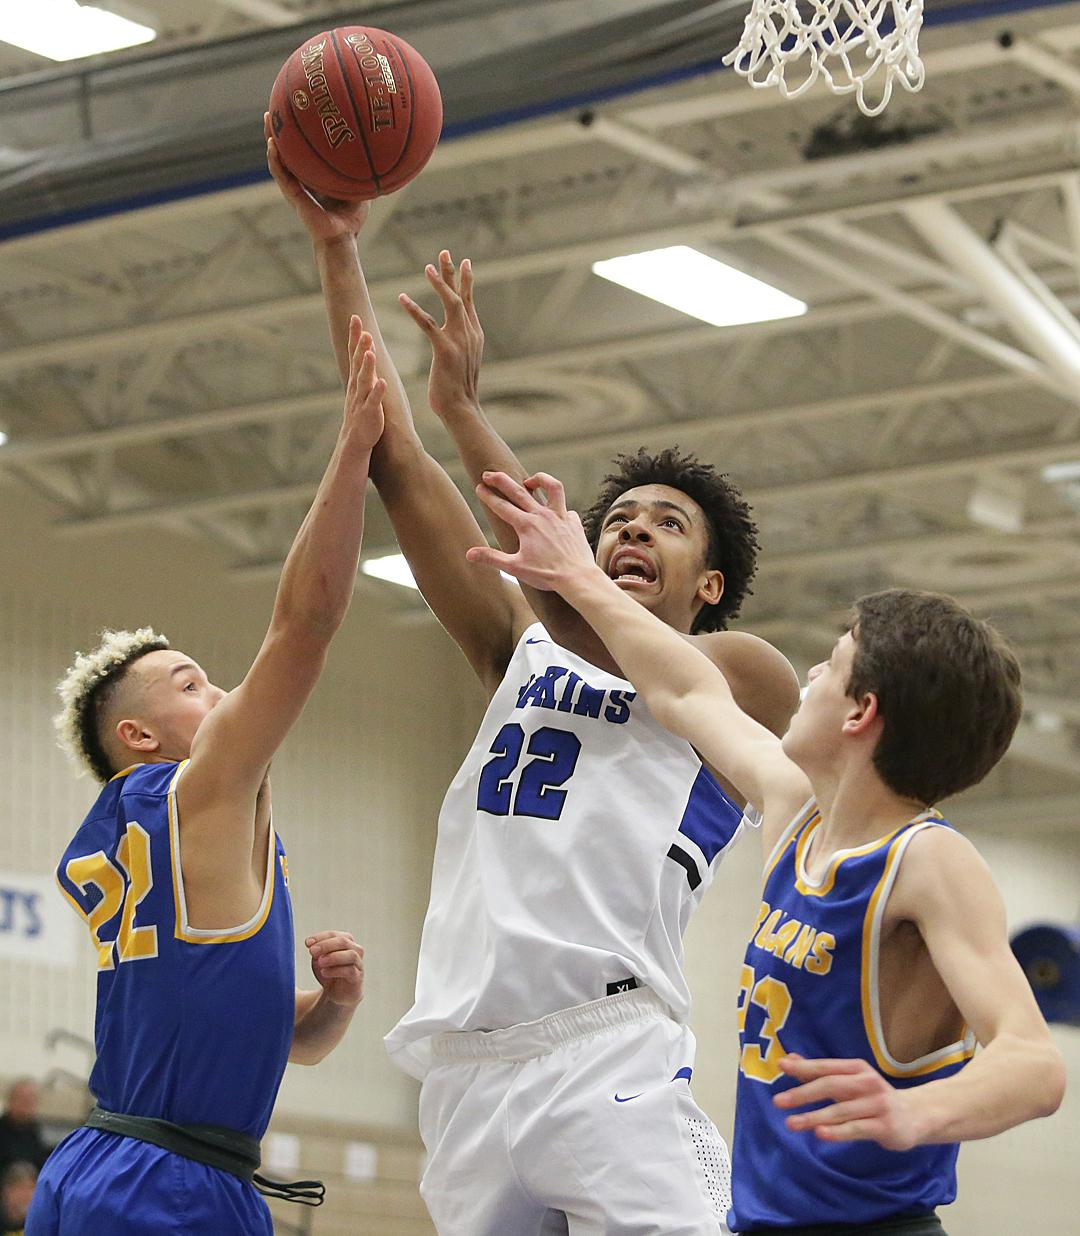 Zeke Nnaji (22) pushes thru Wayzata defenders Kody Williams (22) and Camden Heide (23). Nnaji scored a game-high 23 points leading the Royals to a 89-63 to remain undefeated in the Lake Conference. Photo by Cheryl Myers, Courtesy of Hopkins Boys Basketbal